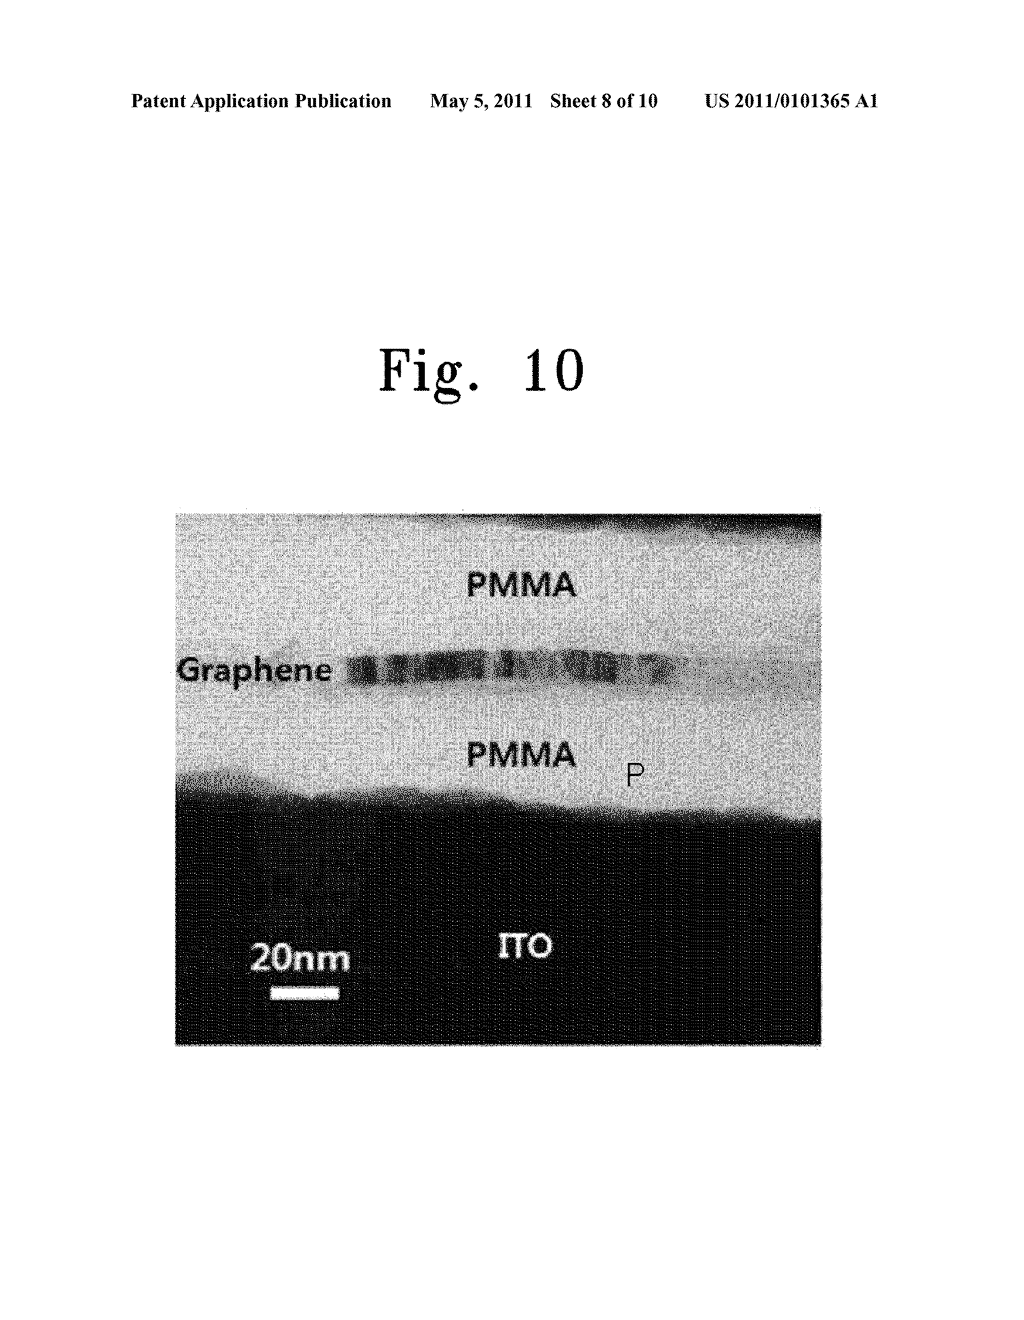 ELECTRONIC DEVICE INCLUDING GRAPHENE THIN FILM AND METHODS OF FABRICATING THE SAME - diagram, schematic, and image 09